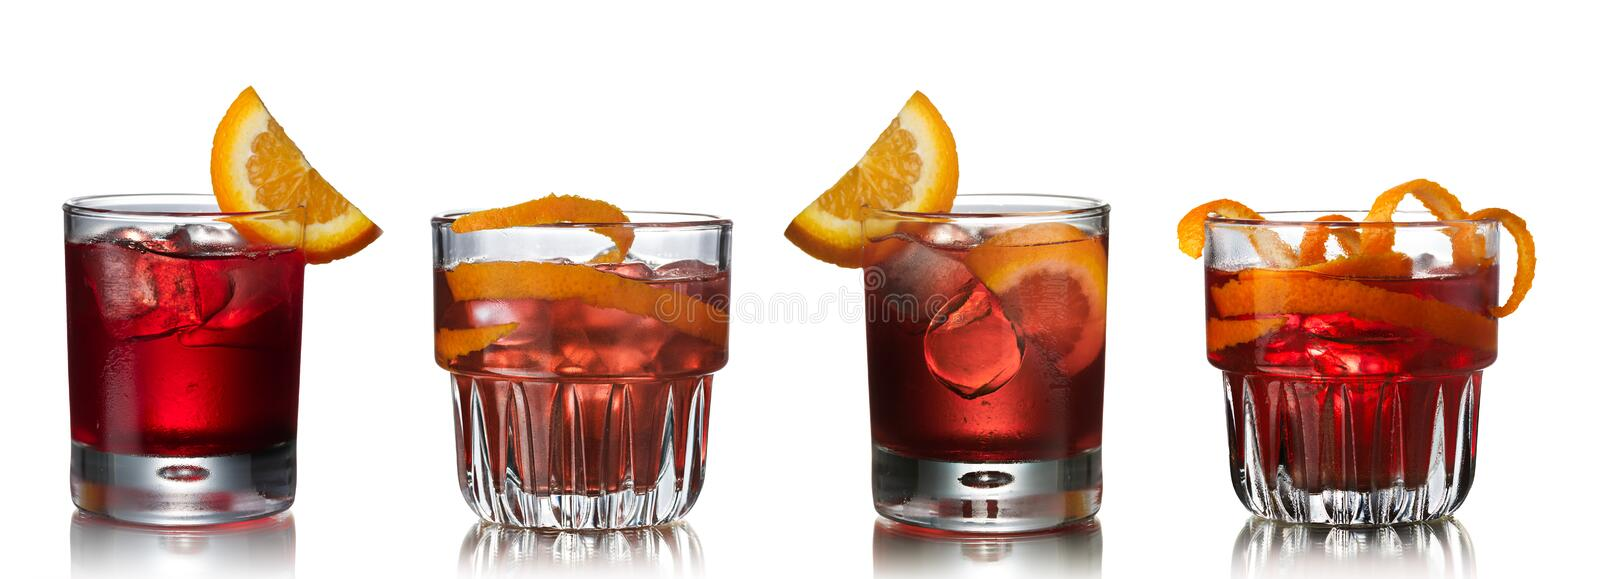 Negroni cocktails stock images